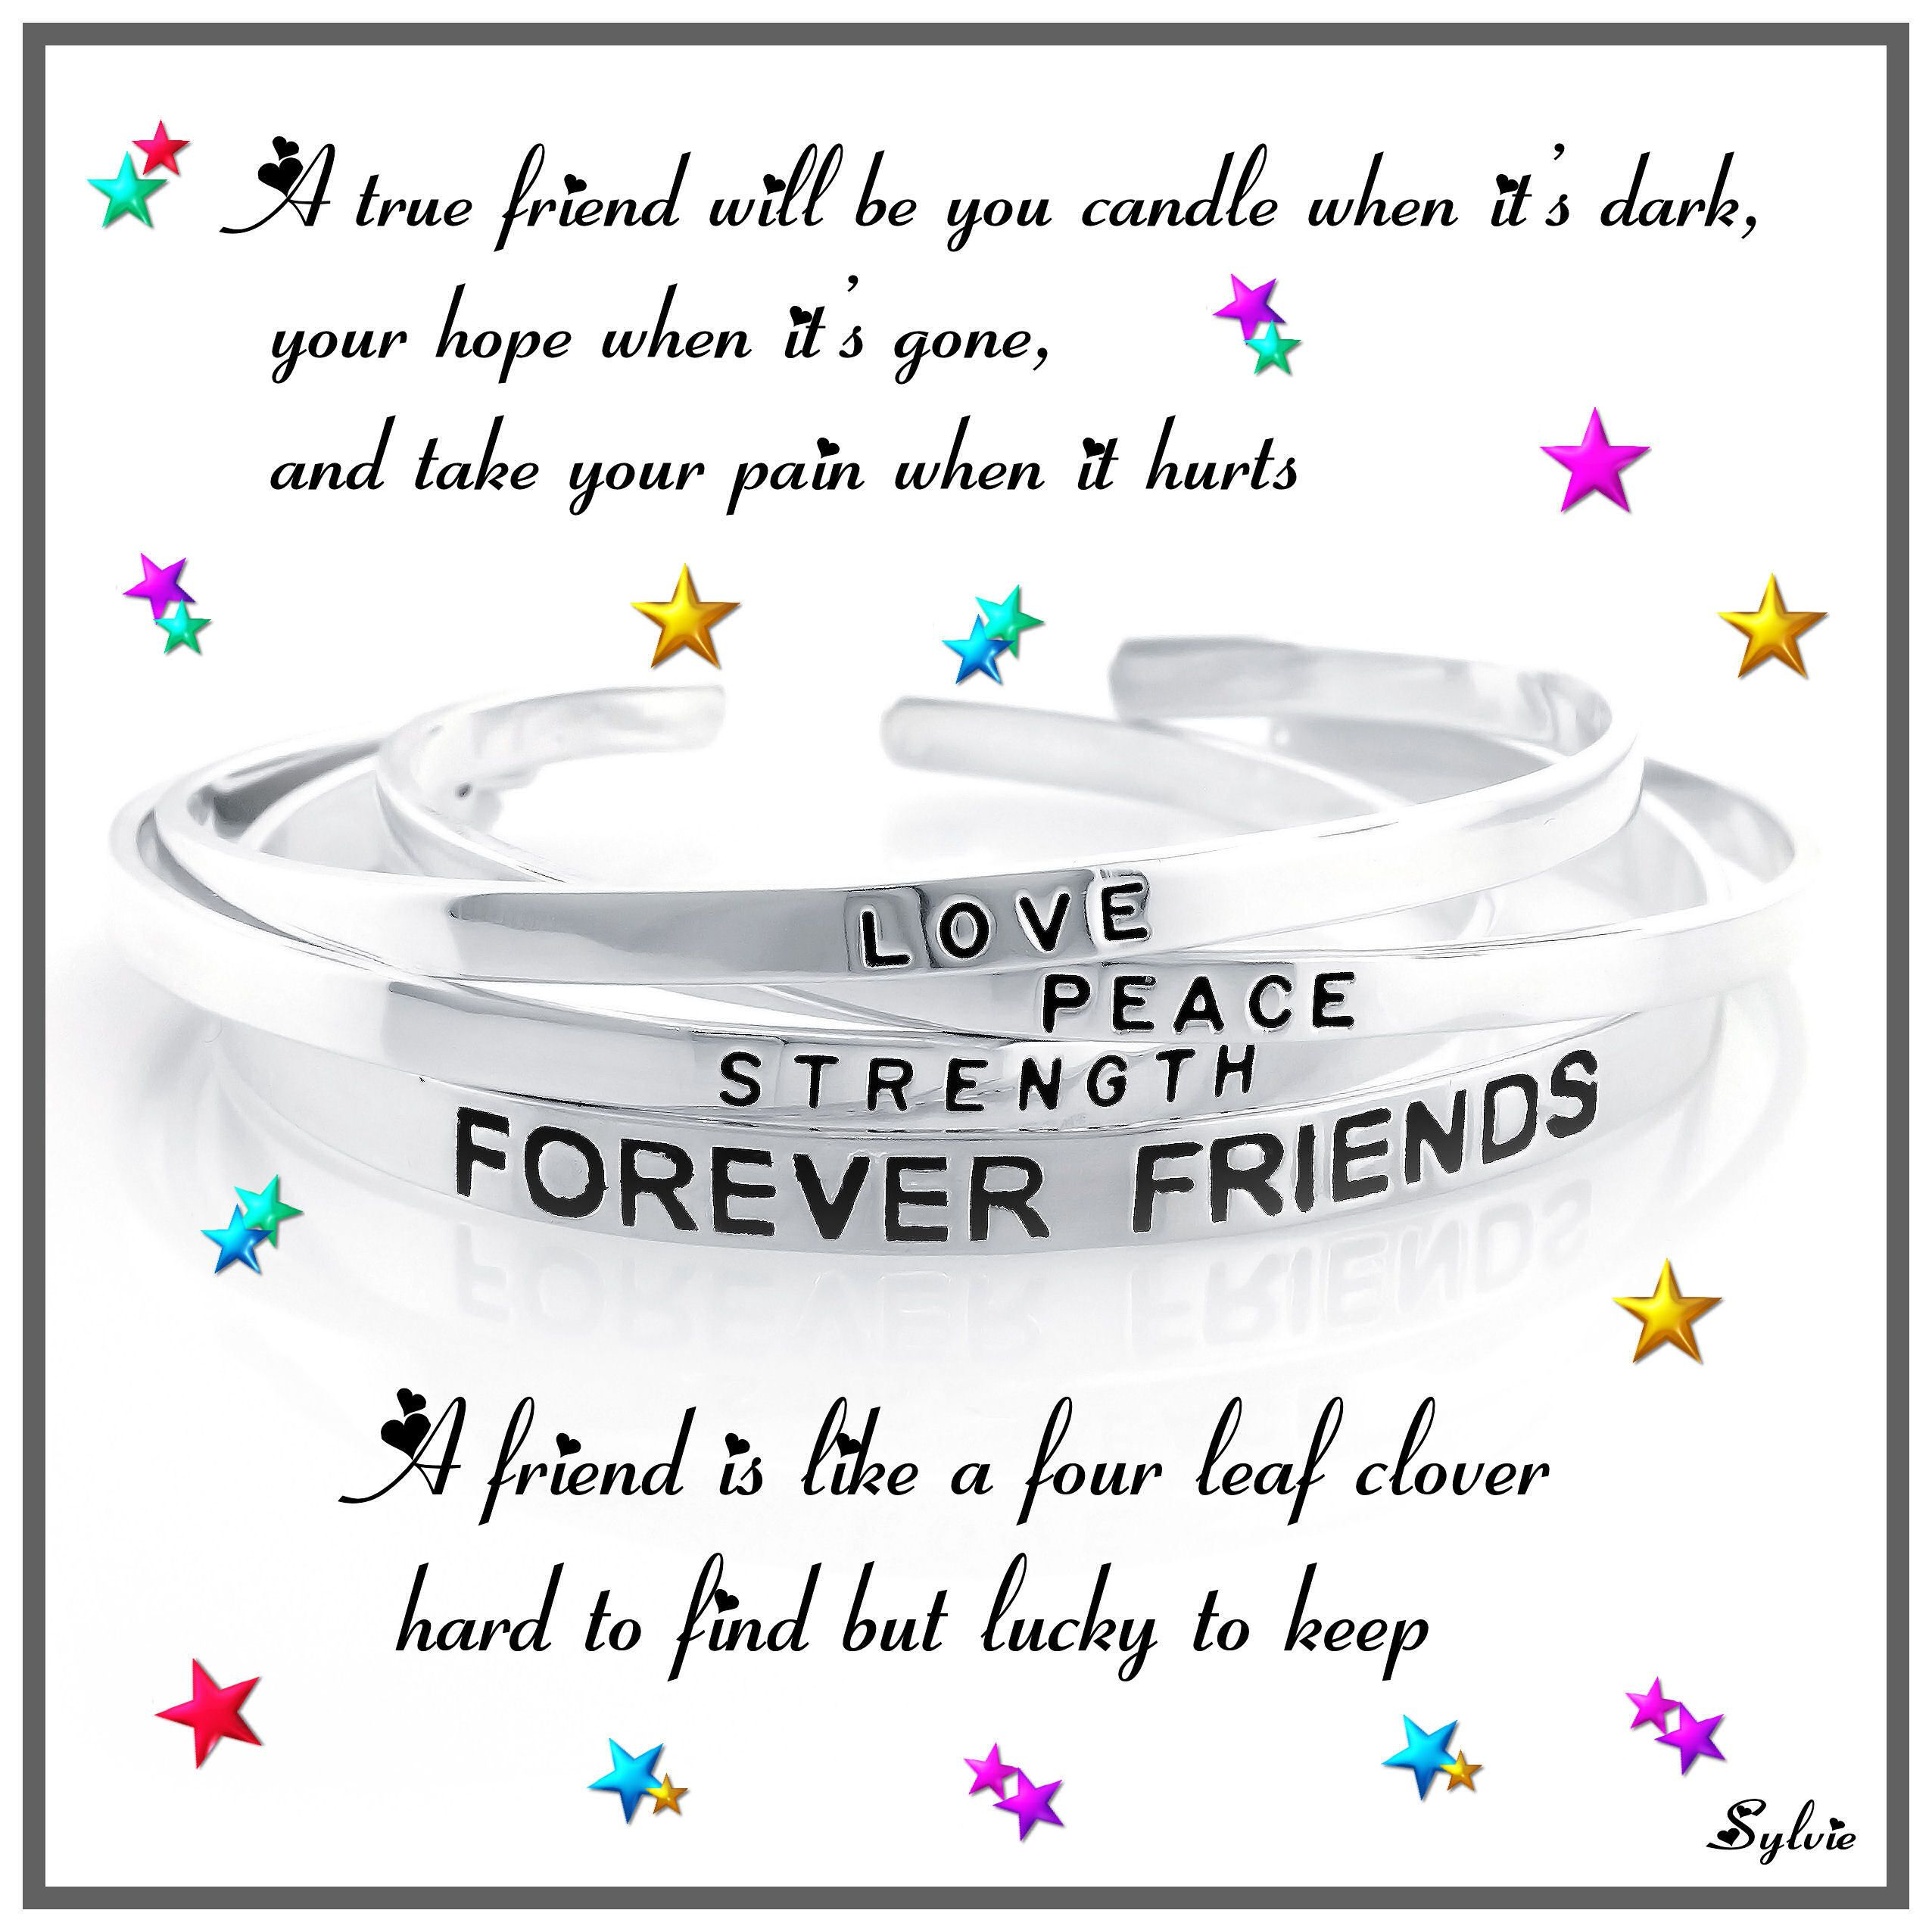 birthday message for girl best friend ; 8ea3af828d8107e35f56c147e85338b5